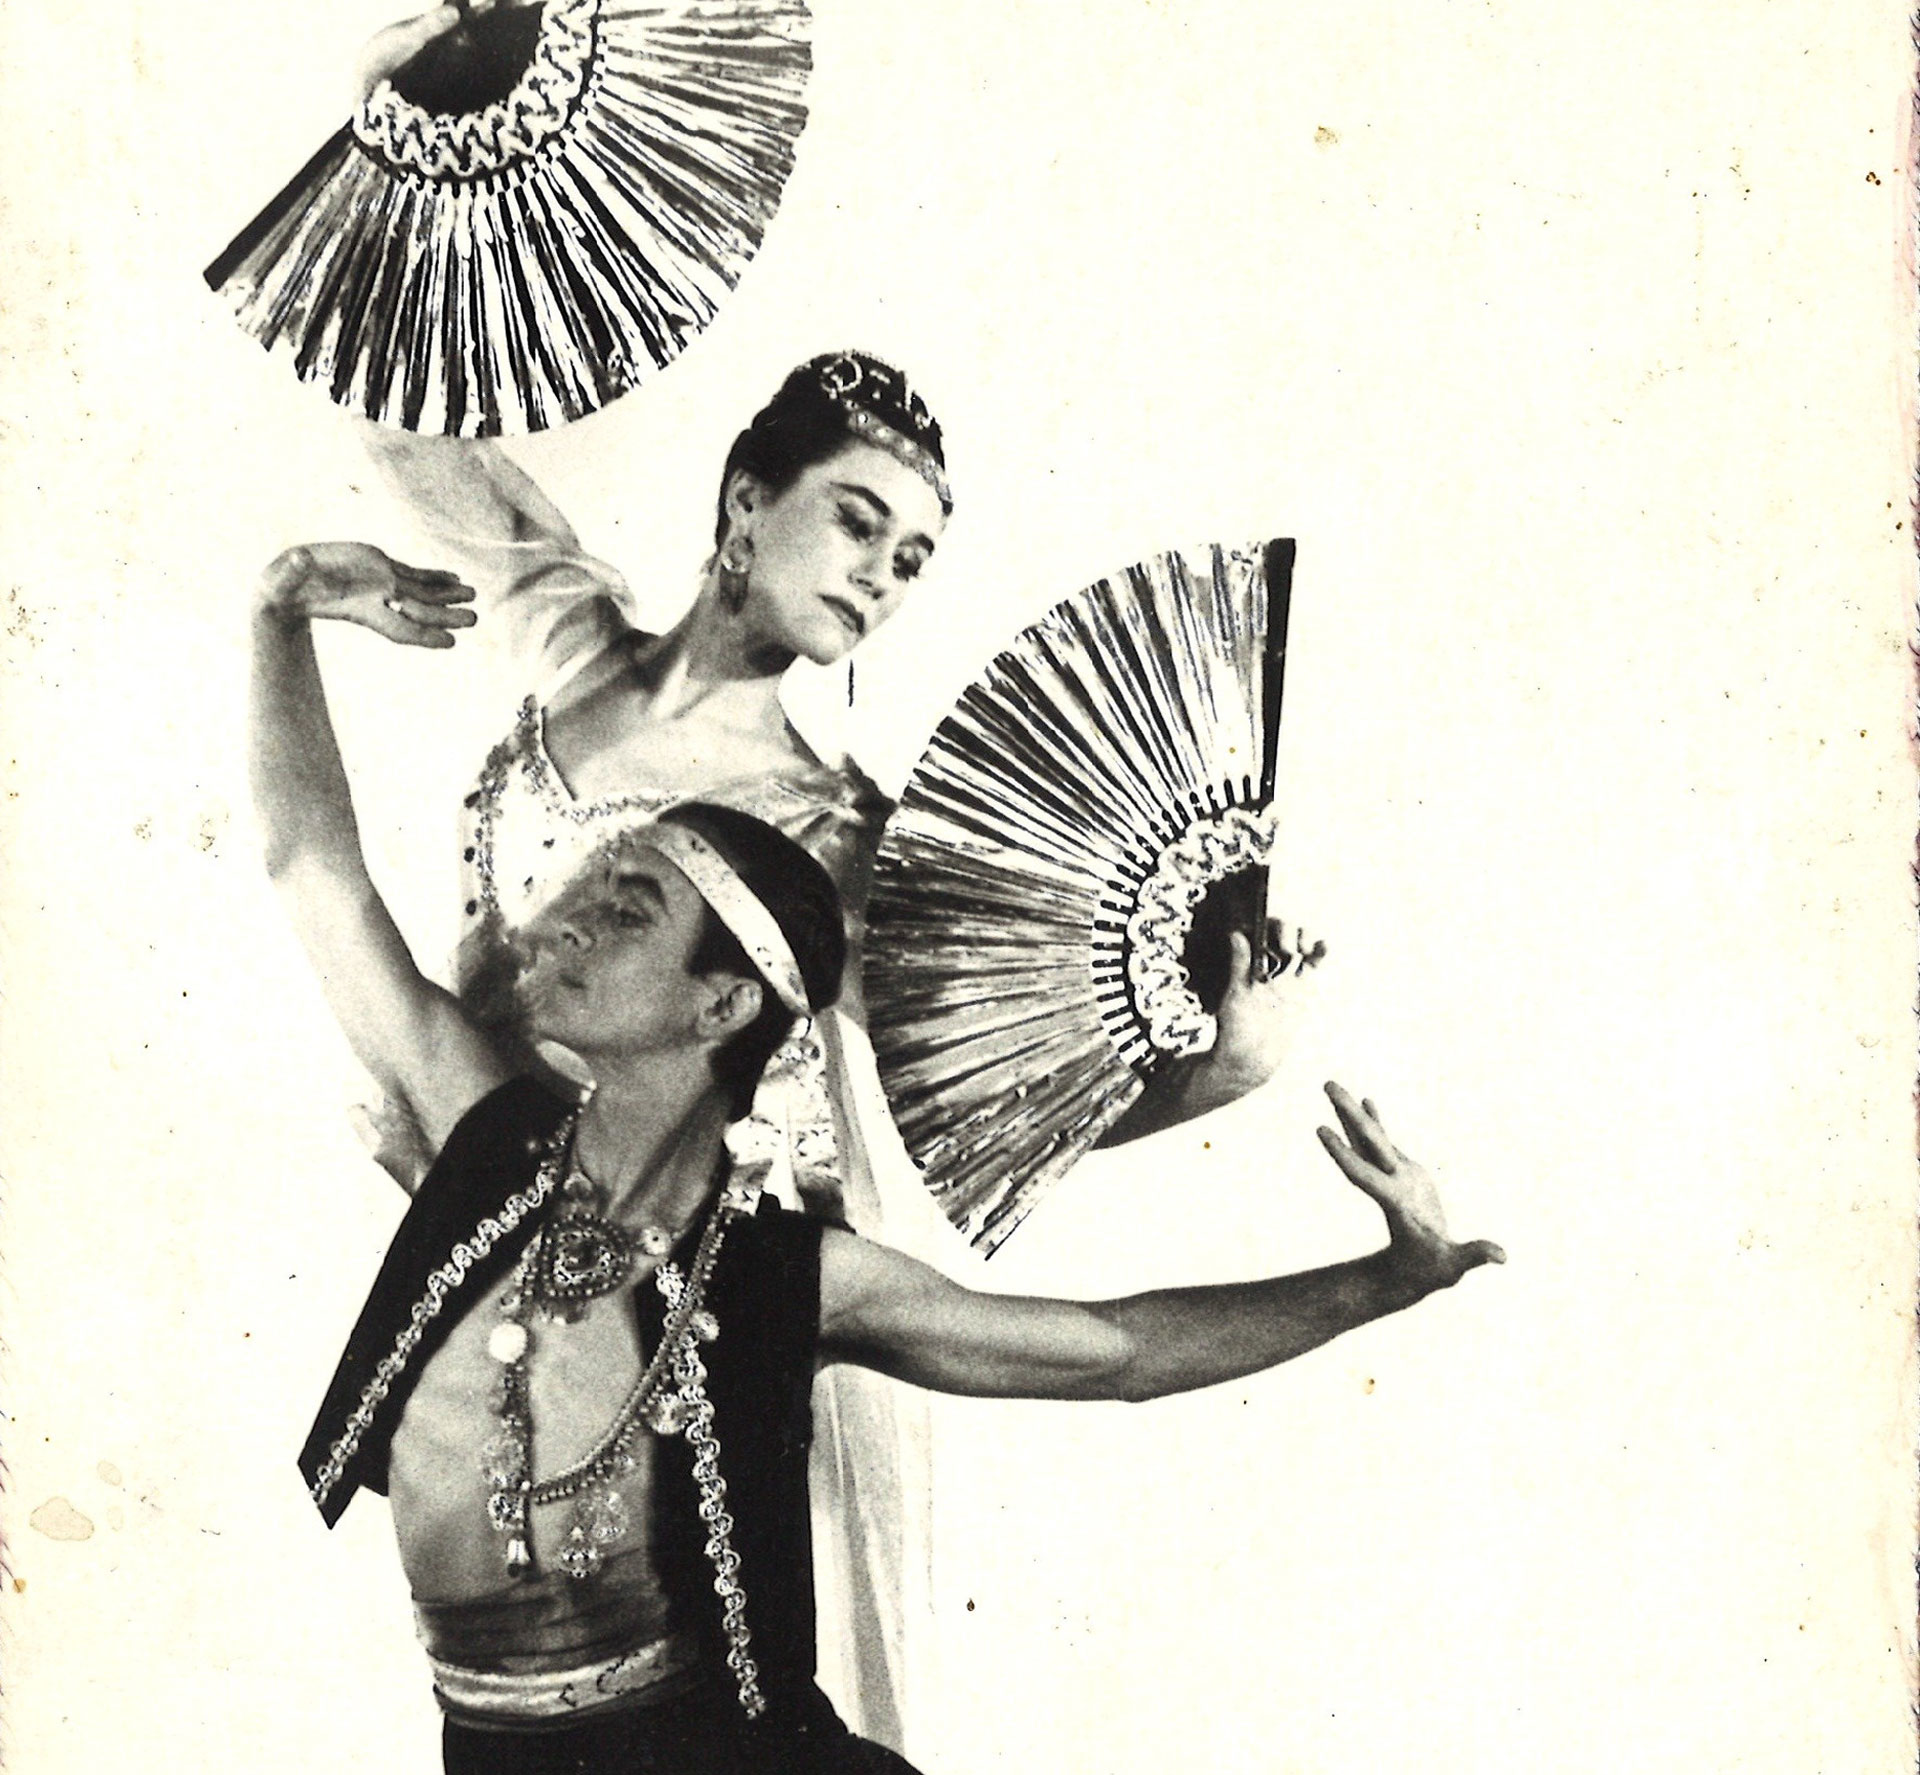 Carlos Carvajal performs a Filipino dance in the 1960s. Carvajal is now the co-artistic director of the San Francisco Ethnic Dance Festival.